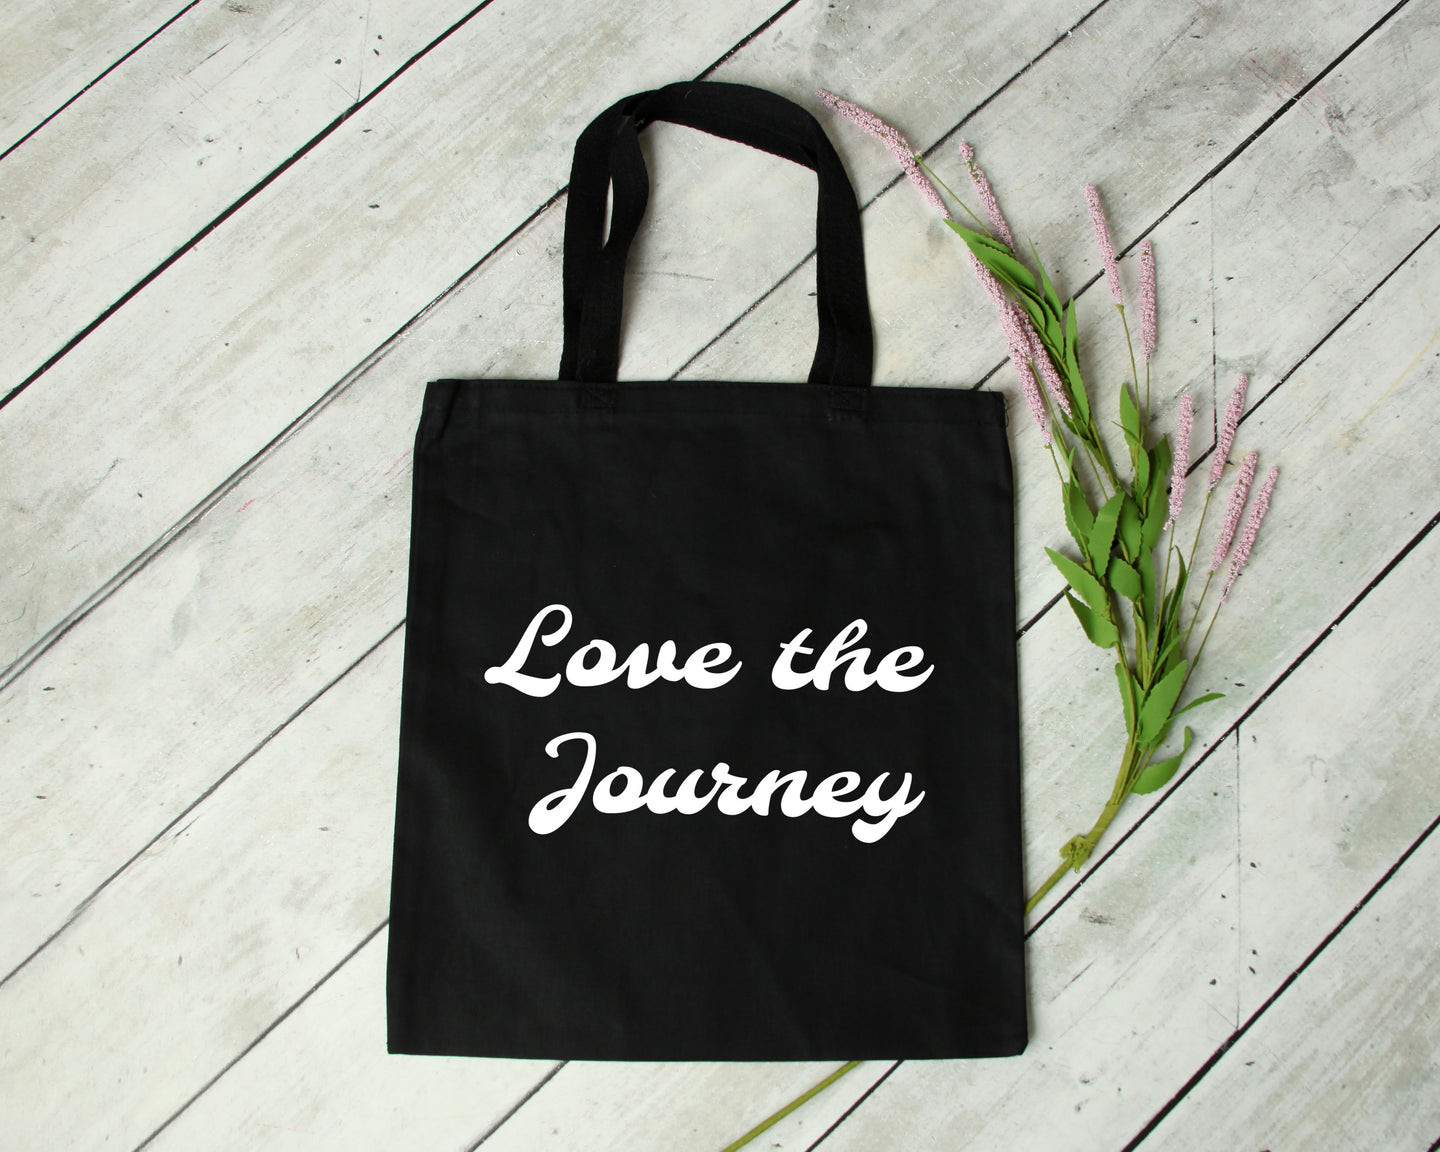 Love the Journey reusable cotton canvas black tote bag by Modern Trail